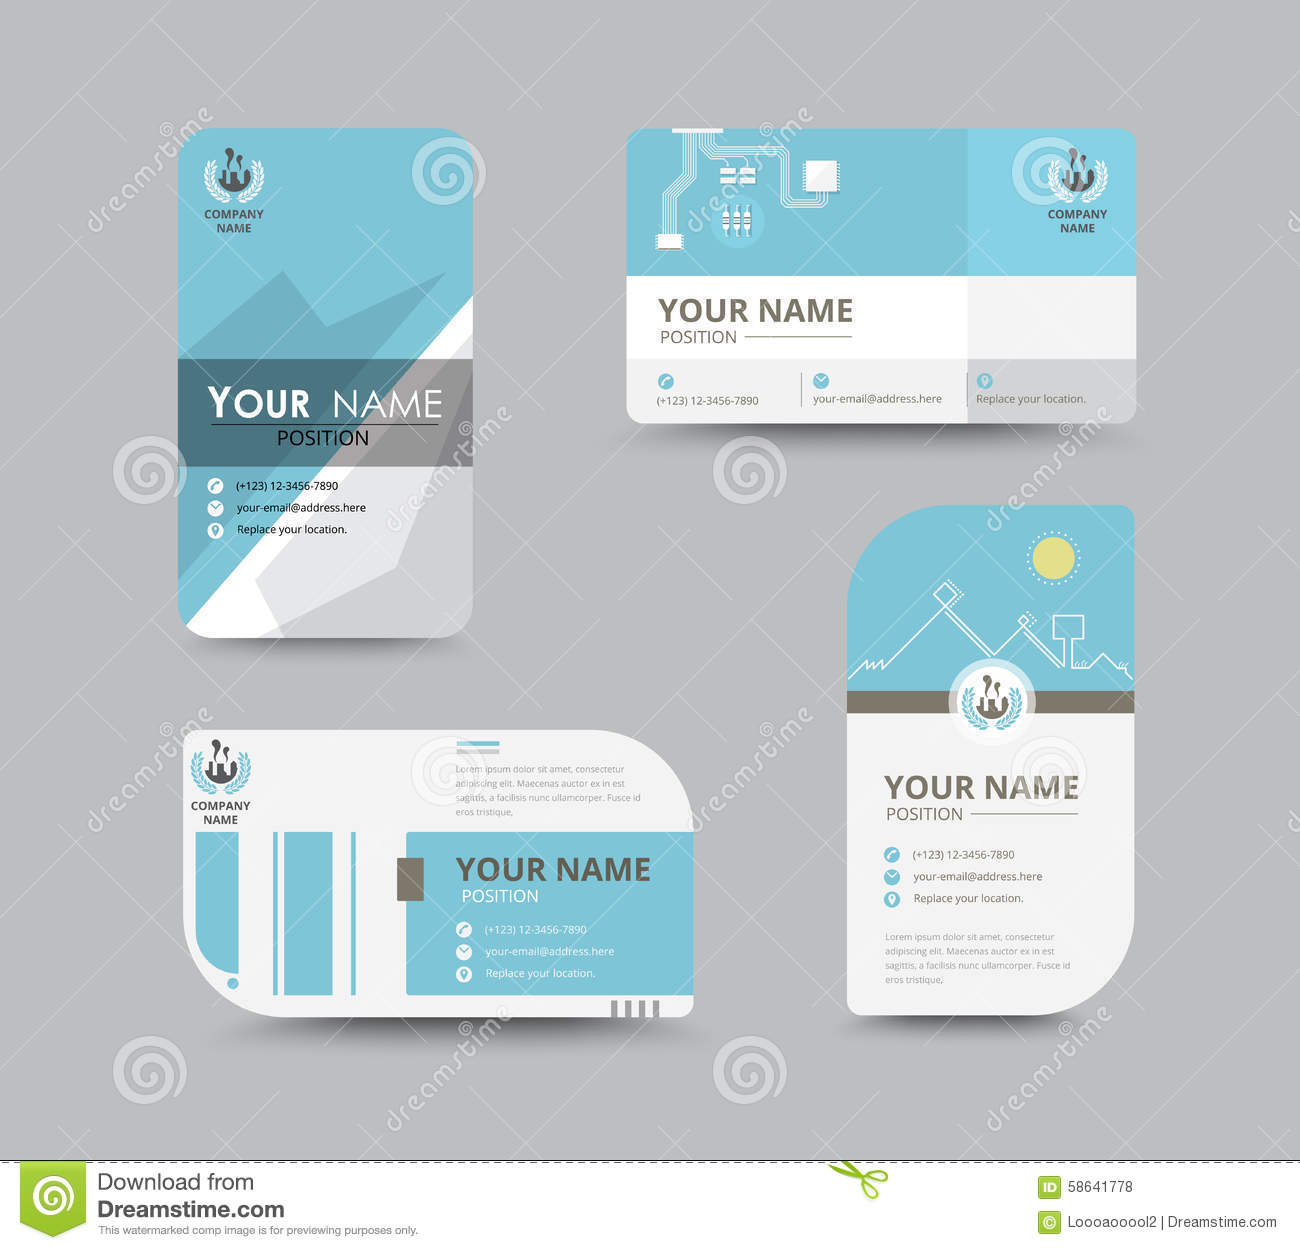 Business Name Card Design For Corporation Card Template Vector - Sample name tag templates